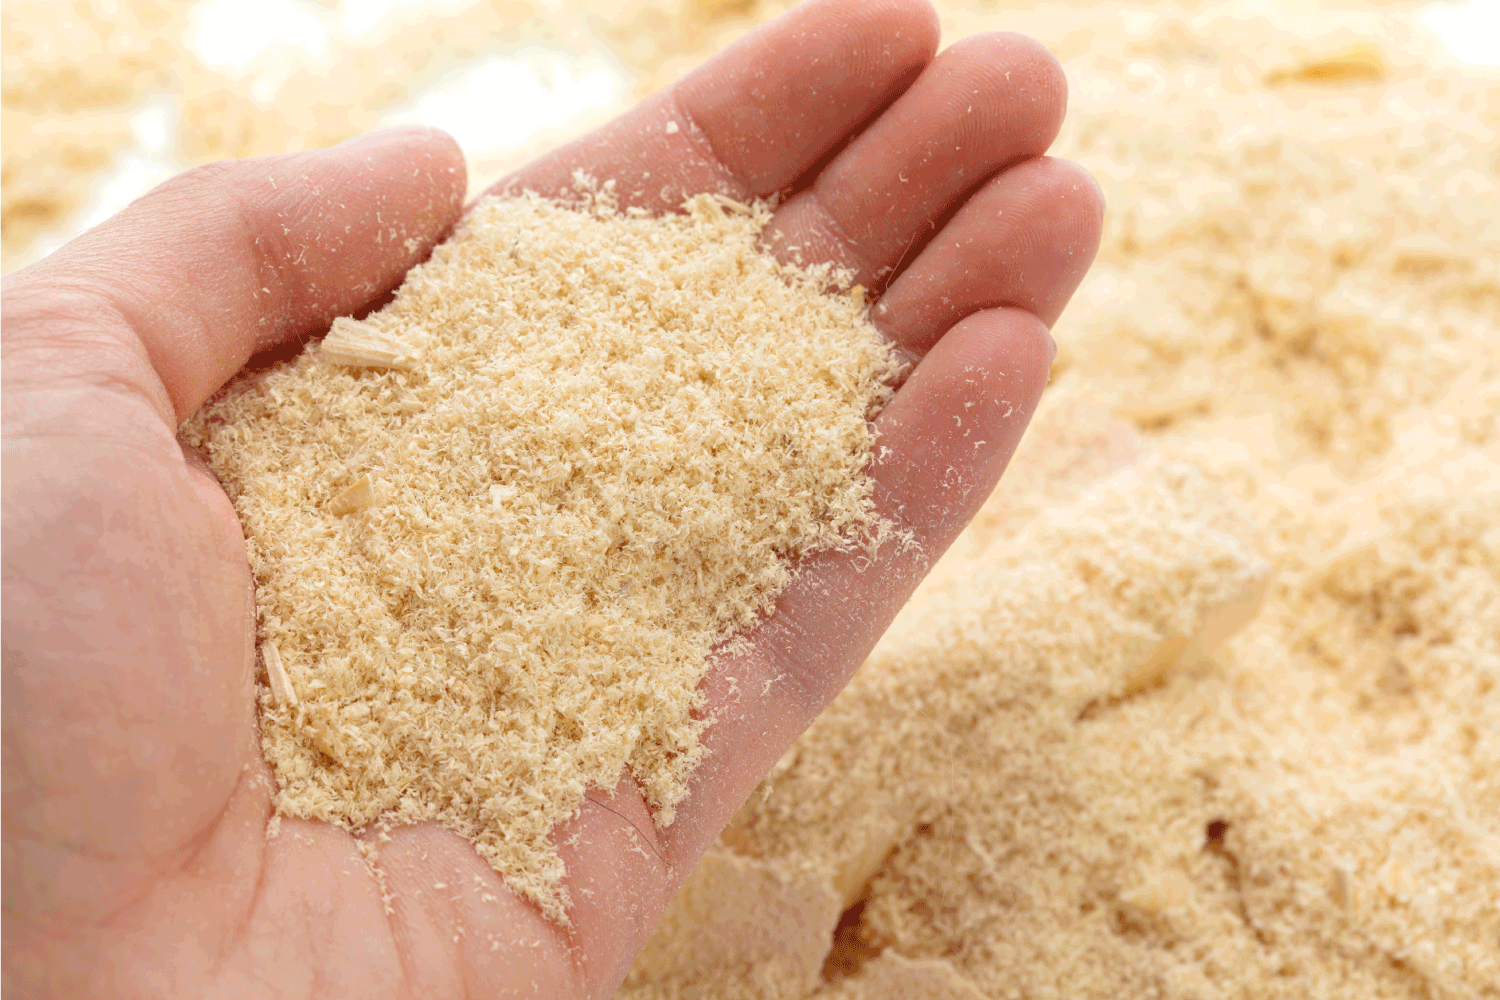 Wood shavings in hand, close-up view